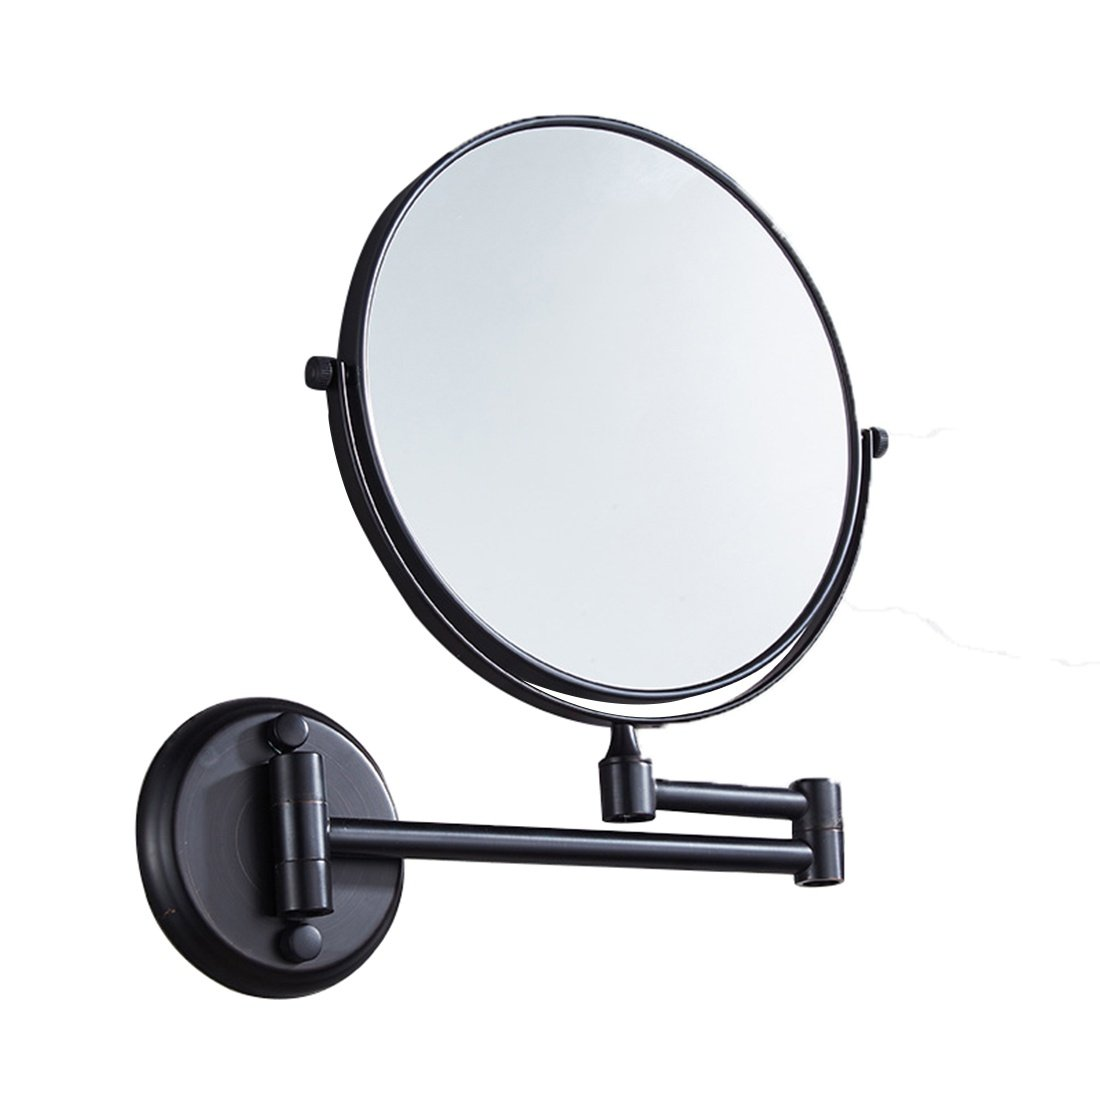 Ysayc Vanity Mirror Double-sided 3x Magnification Wall Mounted Hanging 360° Swivel Bath Spa Hotel Round Bathroom Cosmetic Mirror wall-mounted-mirrors, Black